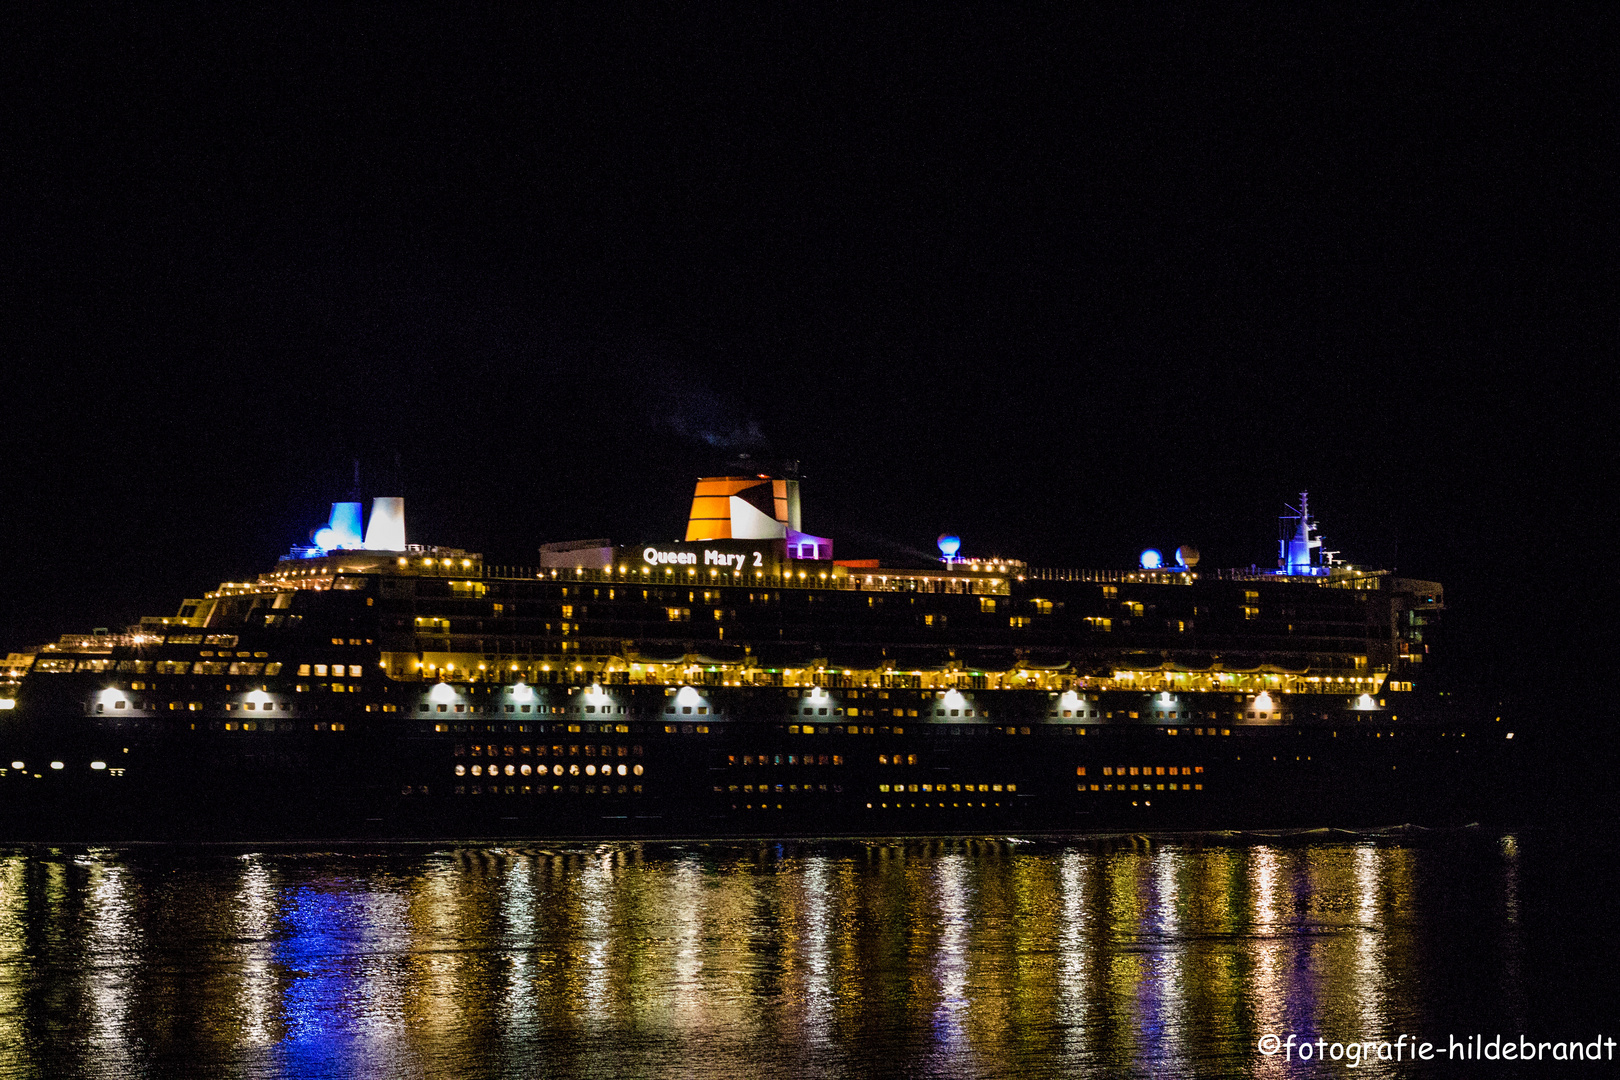 Queen Mary 2 bei Nacht